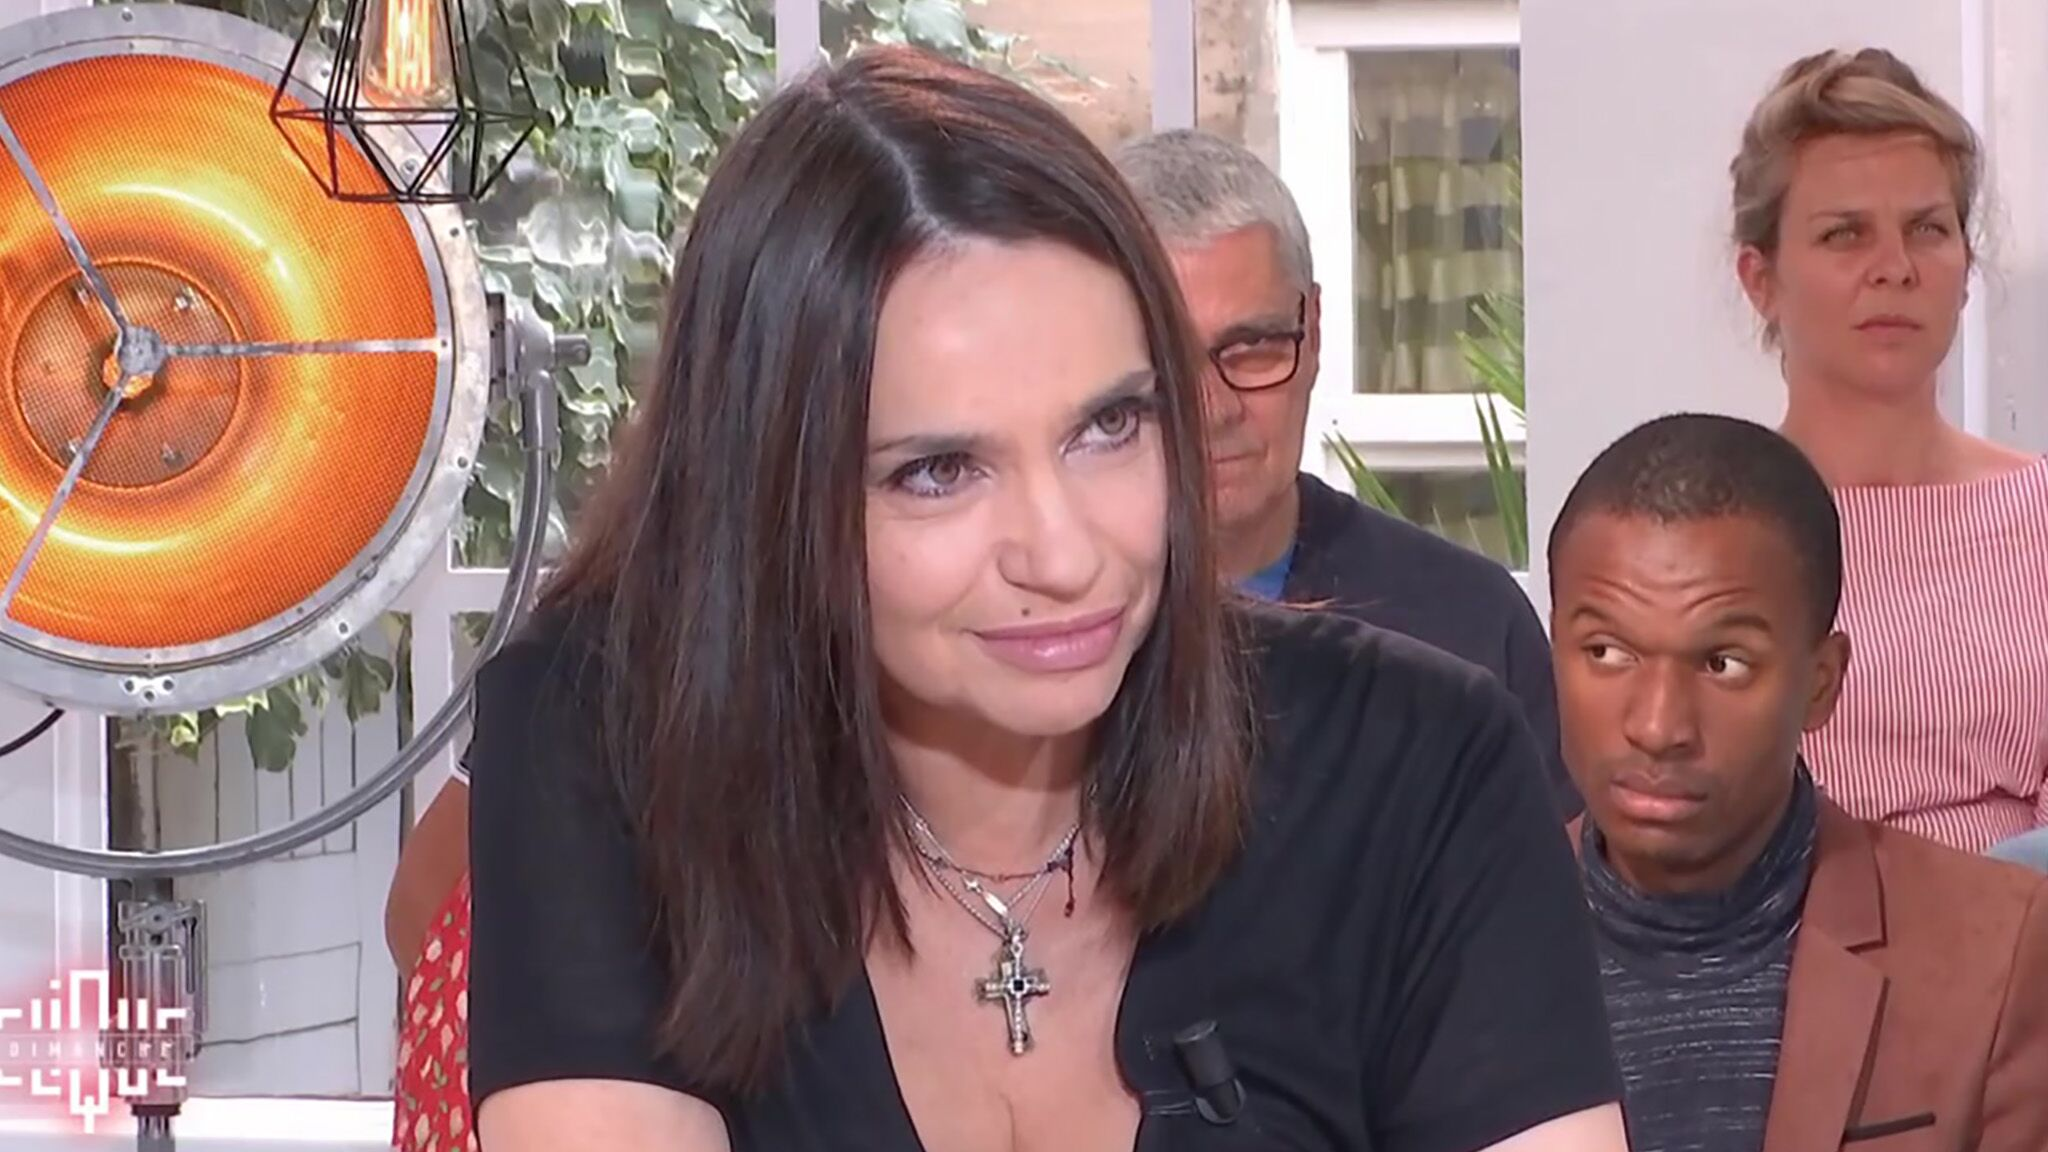 Sideboobs Video Beatrice Dalle naked photo 2017